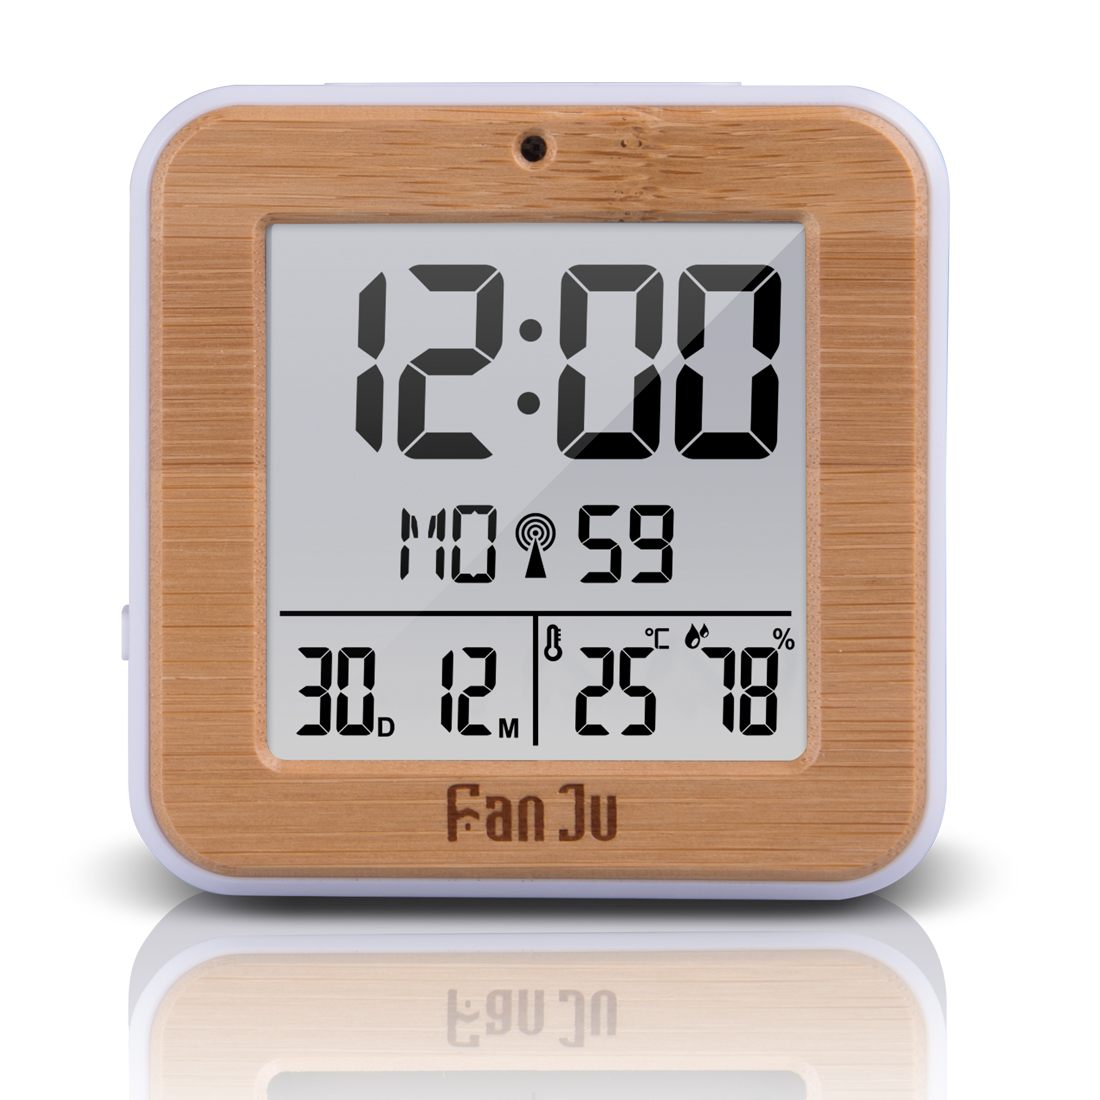 FanJu FJ3533 Digital Alarm Clock LED Table Clock Temperature Humidity Dual Alarm Auto Backlight Snooze Date Thermometer Display